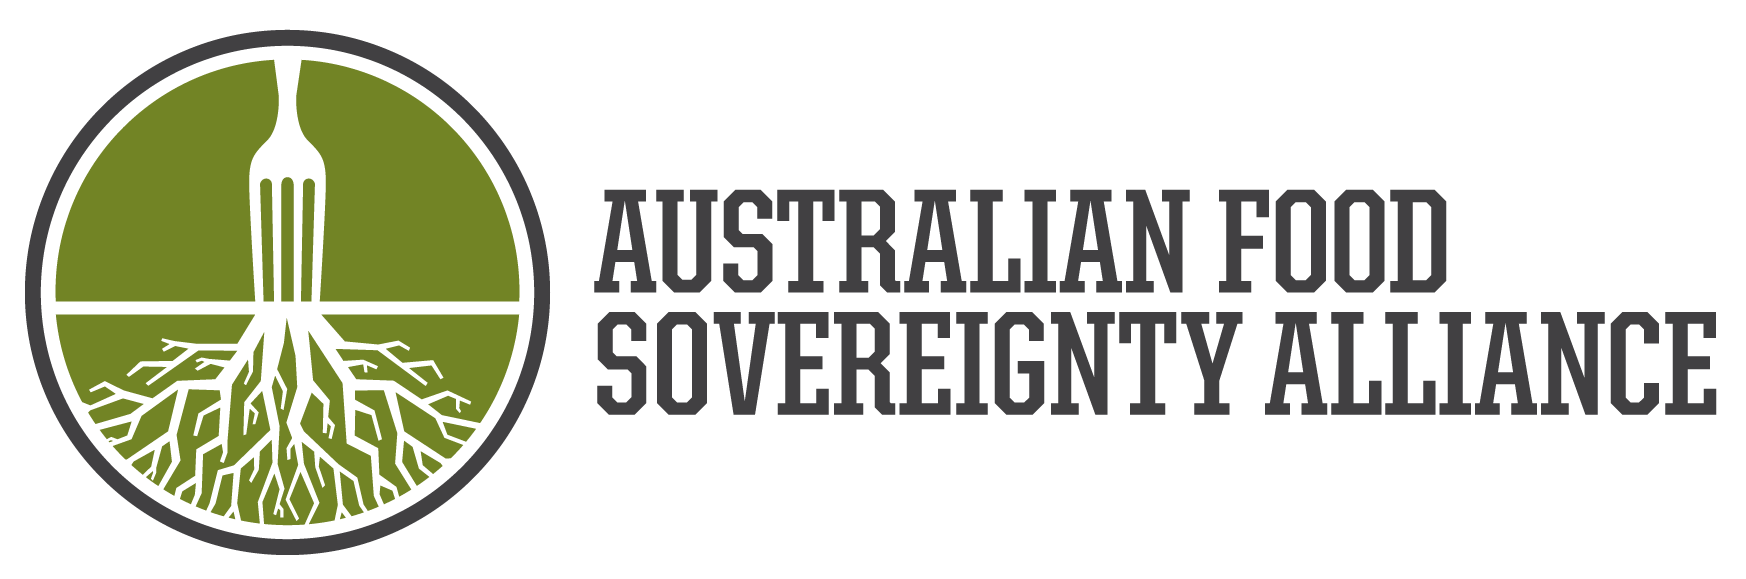 We are strong supporters of the Australian Food Sovereignty Alliance, and Tammi is President, as well as Chair of the AFSA Legal Defence Fund, established in 2016 to support small-scale farmers and eaters in their right to determine their own food and agriculture systems in the face of scale-inappropriate regulations and planning. If you want to do more to support farmers like us and the food systems we're creating,    join AFSA now!